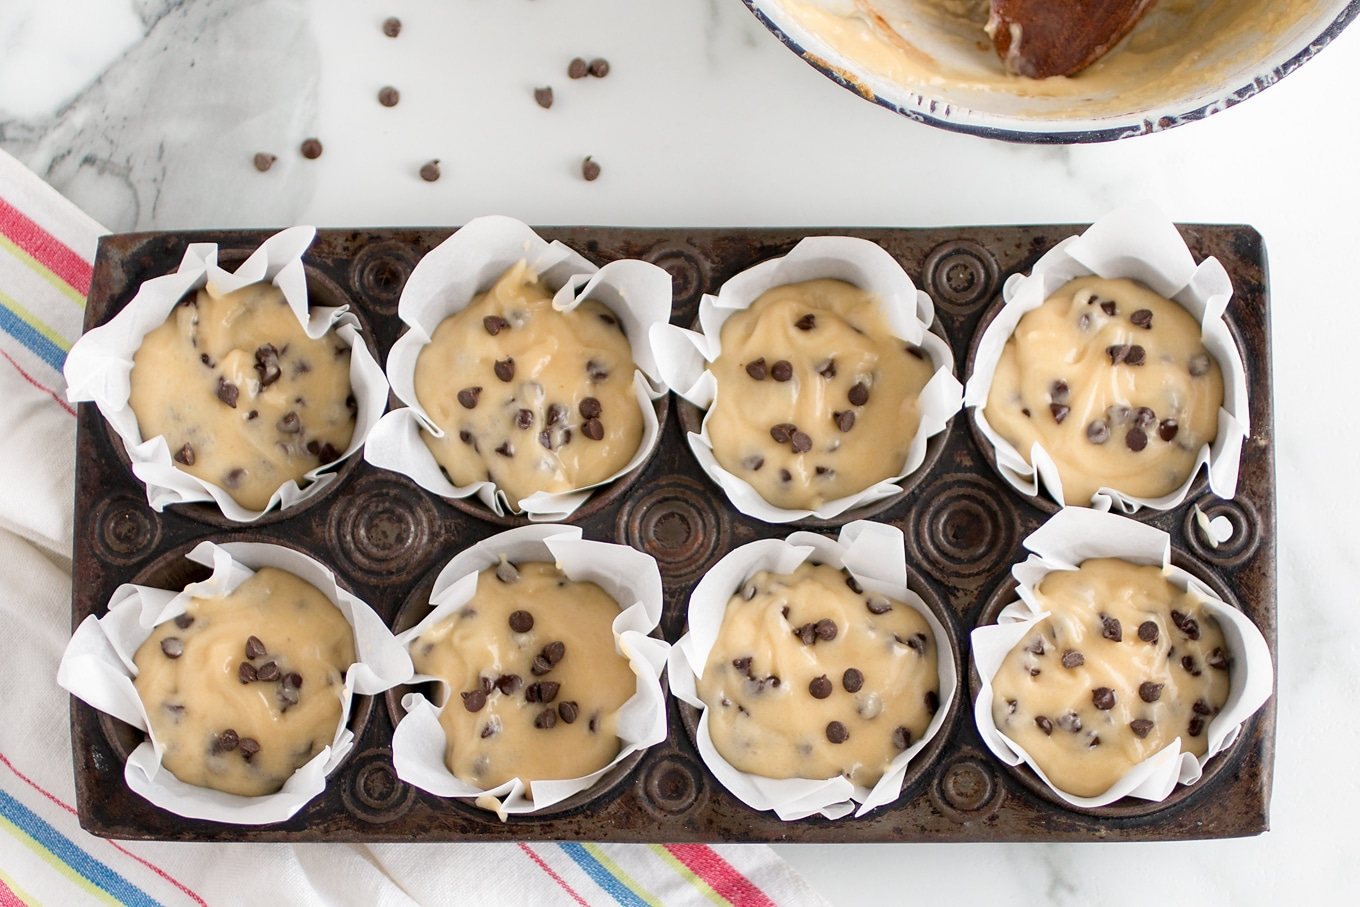 Chocolate Chip Muffin Batter in Muffin Tins